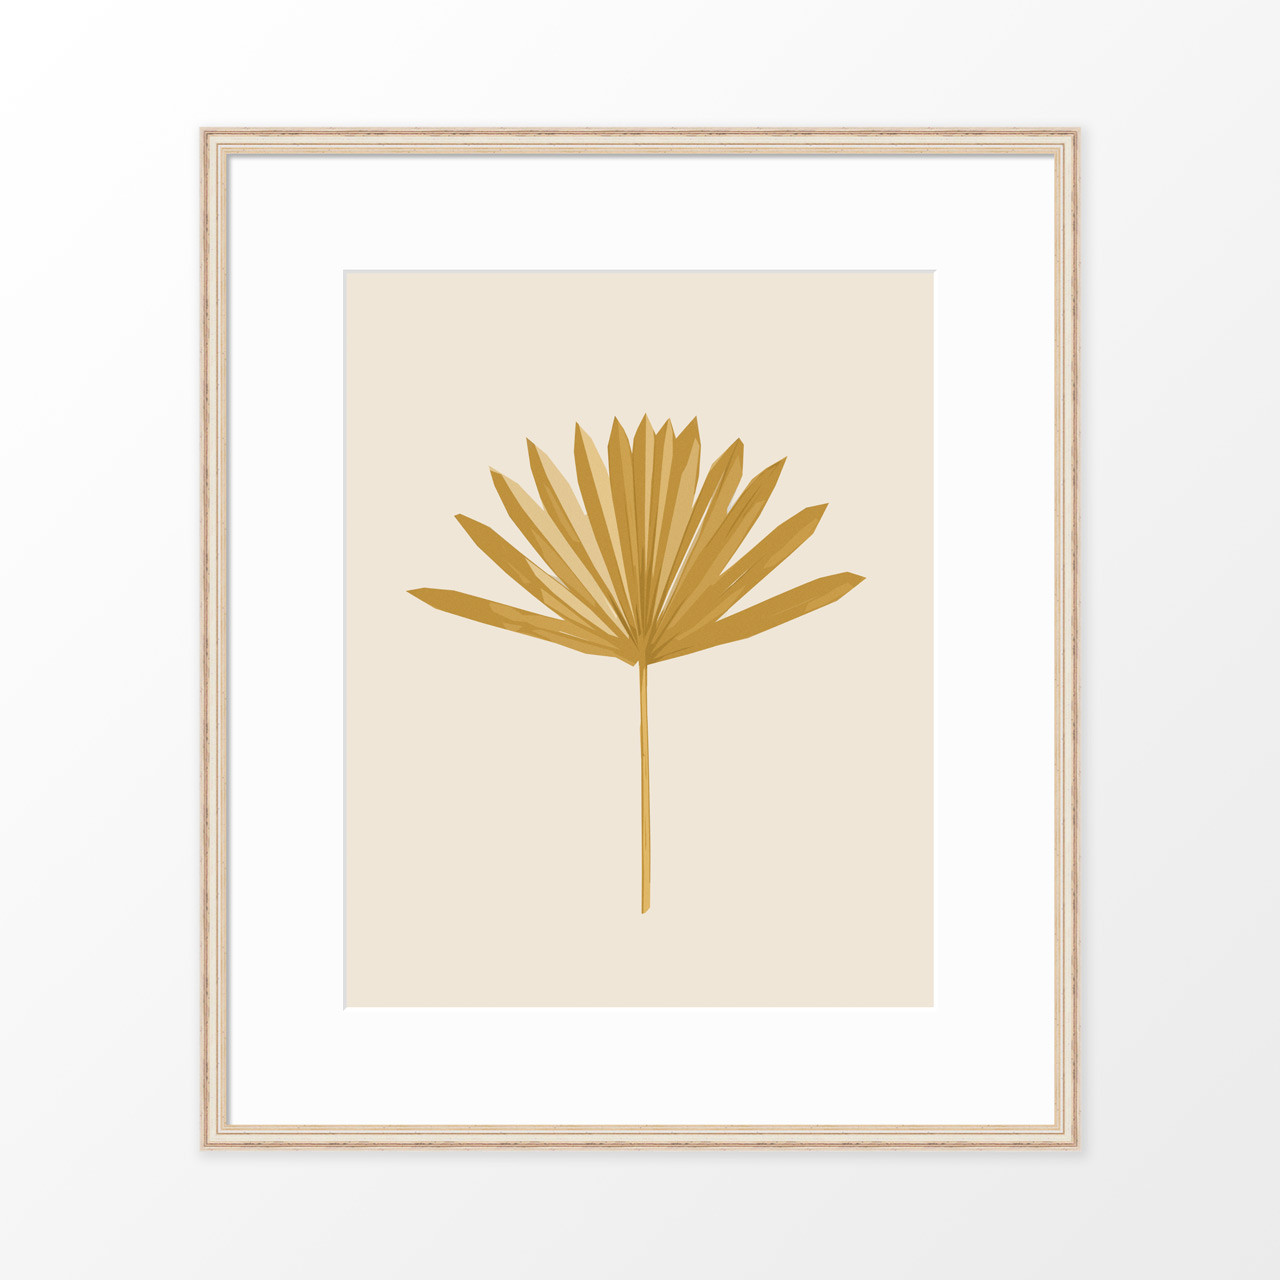 'Sun Palm I' in Ochre Abstract Leaf Art Print from The Printed Home